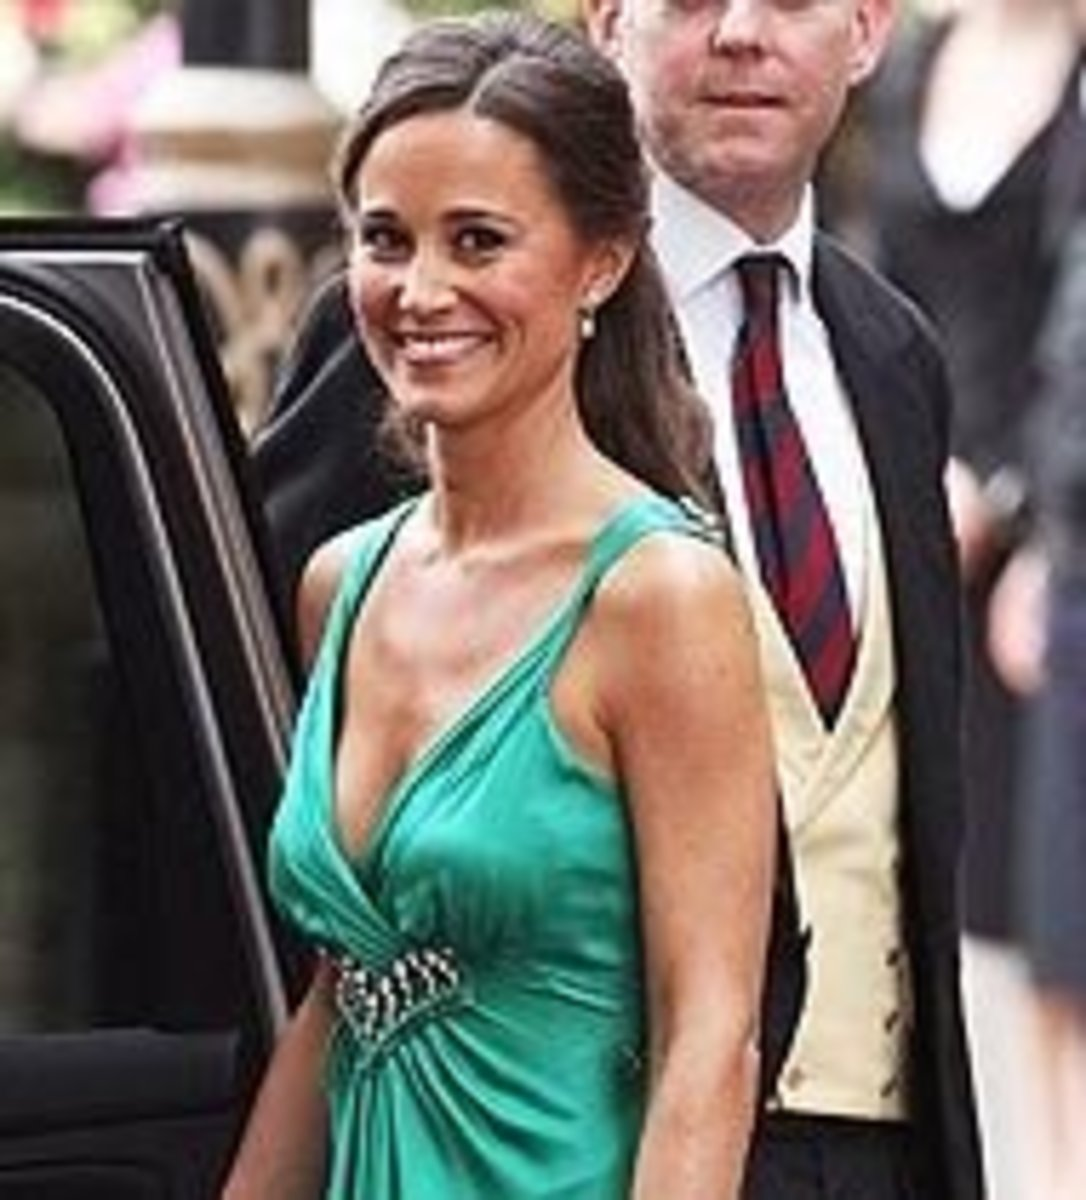 Pippa looking stunning in this green dress